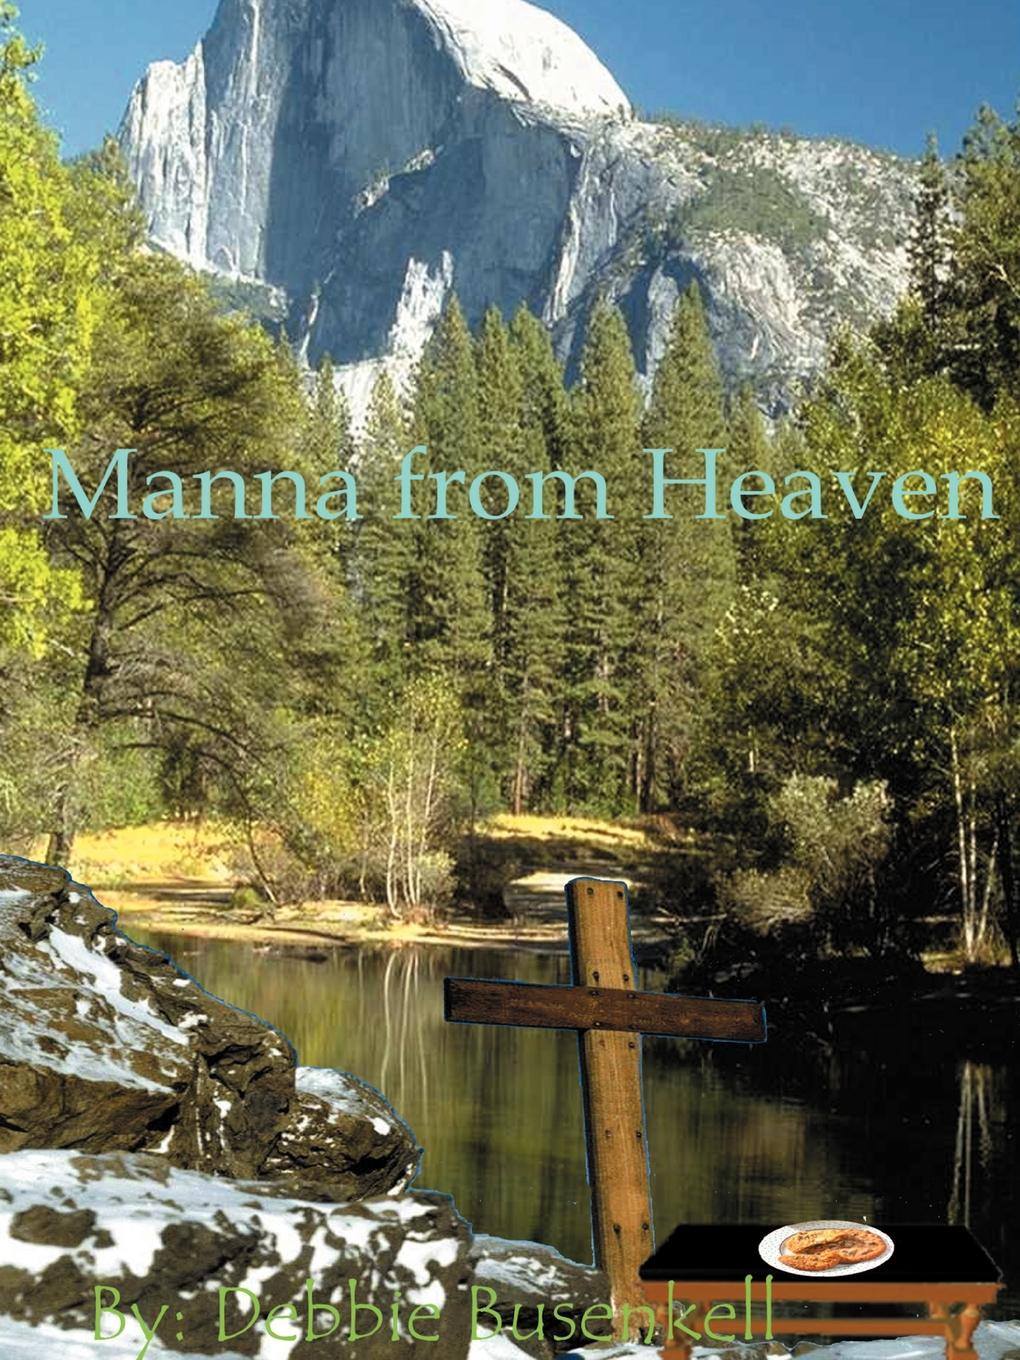 Debbie Busenkell Manna from Heaven. Delicious Low-Fat Recipes Inspired by Great Bible Stories sallie stone 25 delicious soup recipes